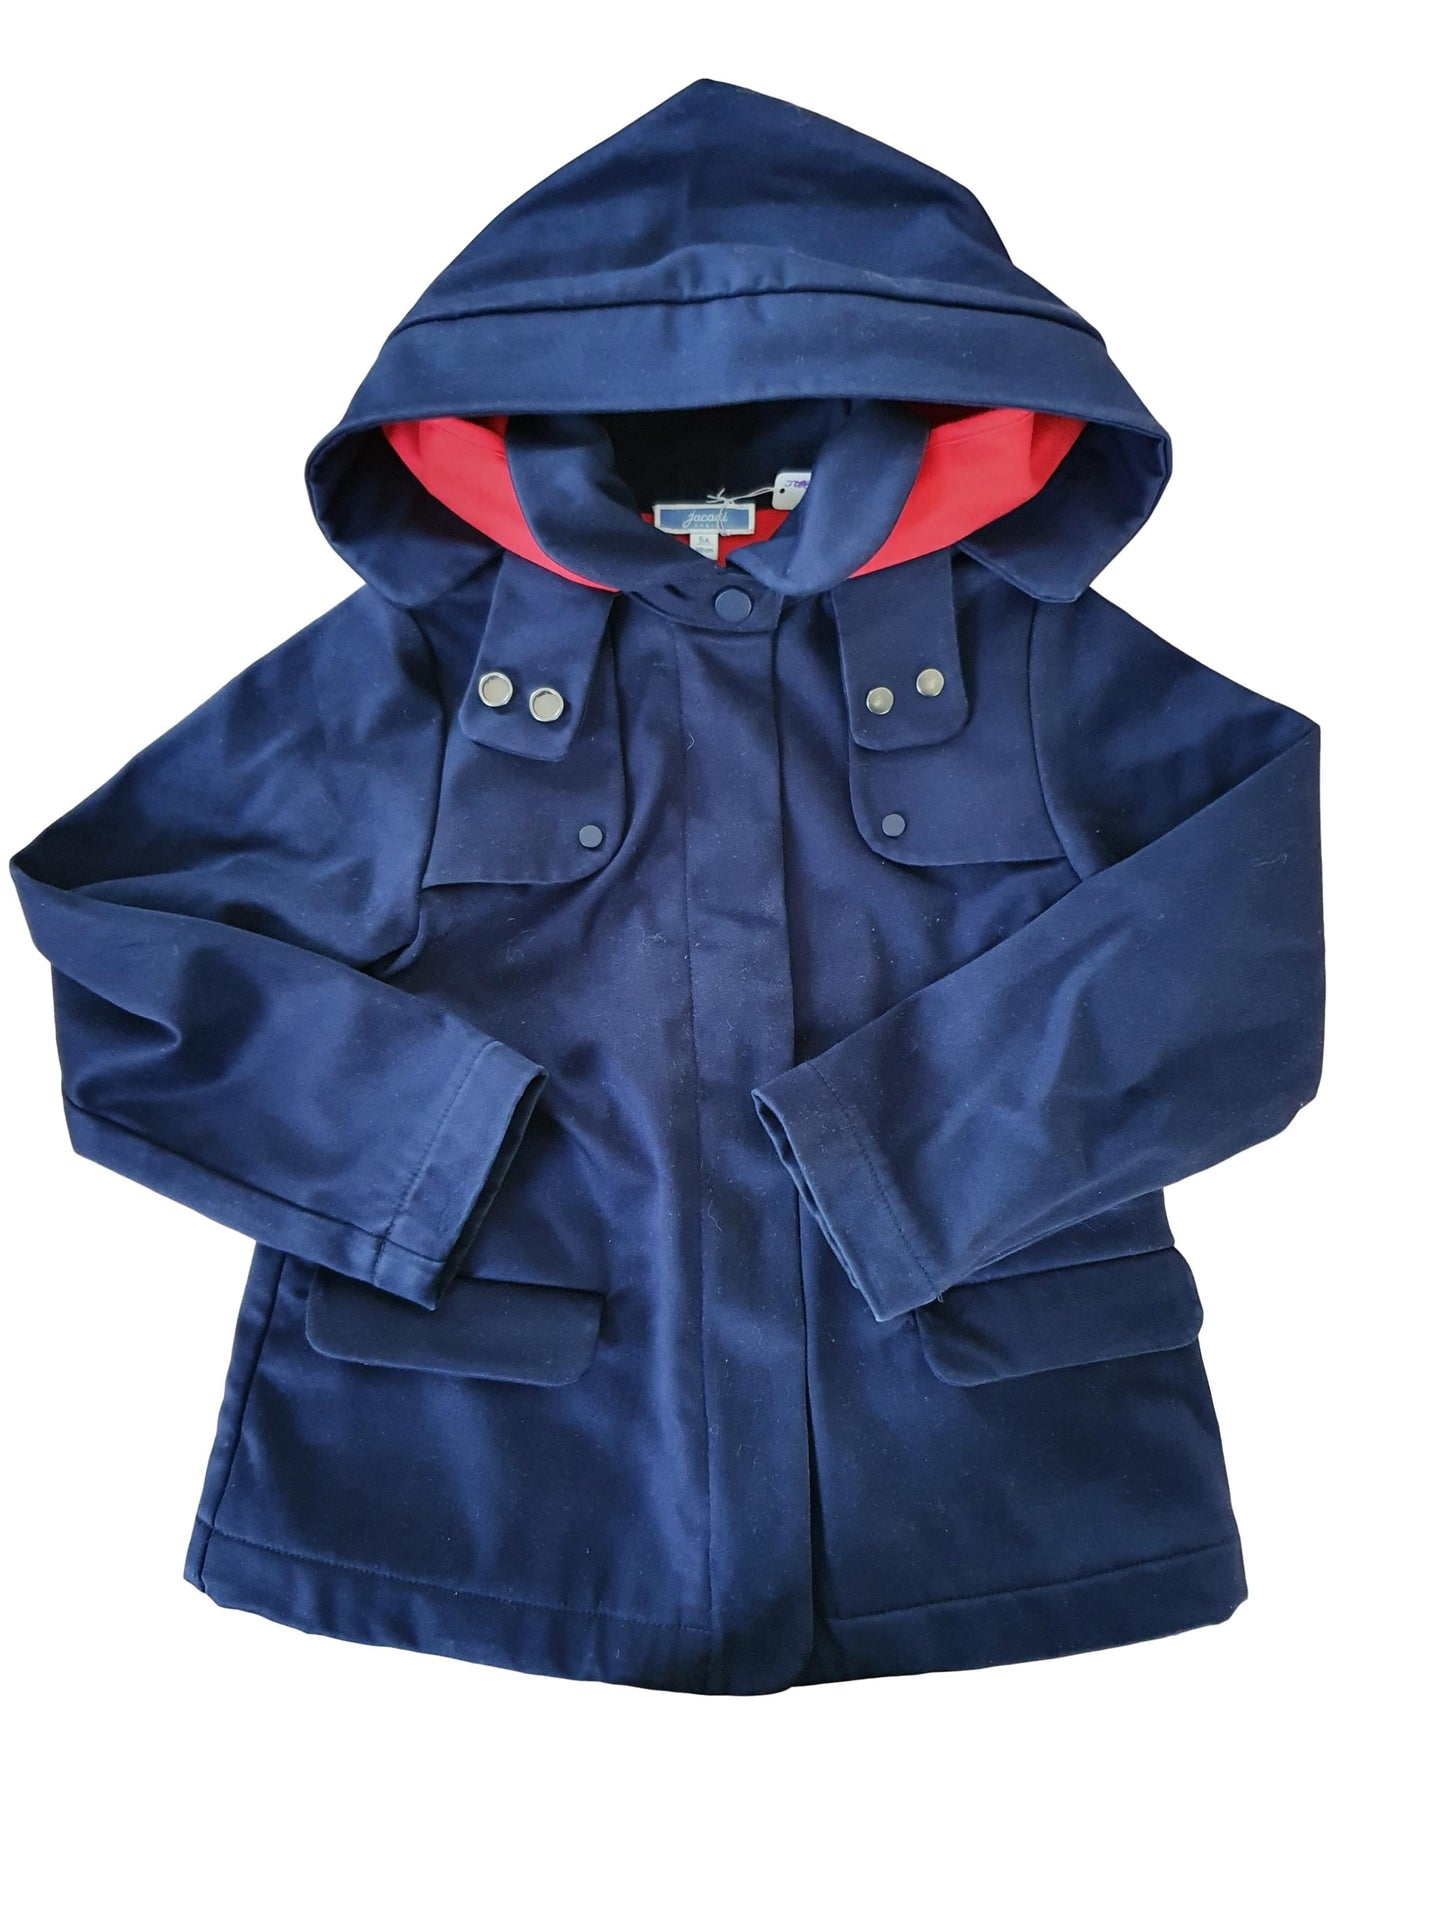 JACADI girl coat 5yo